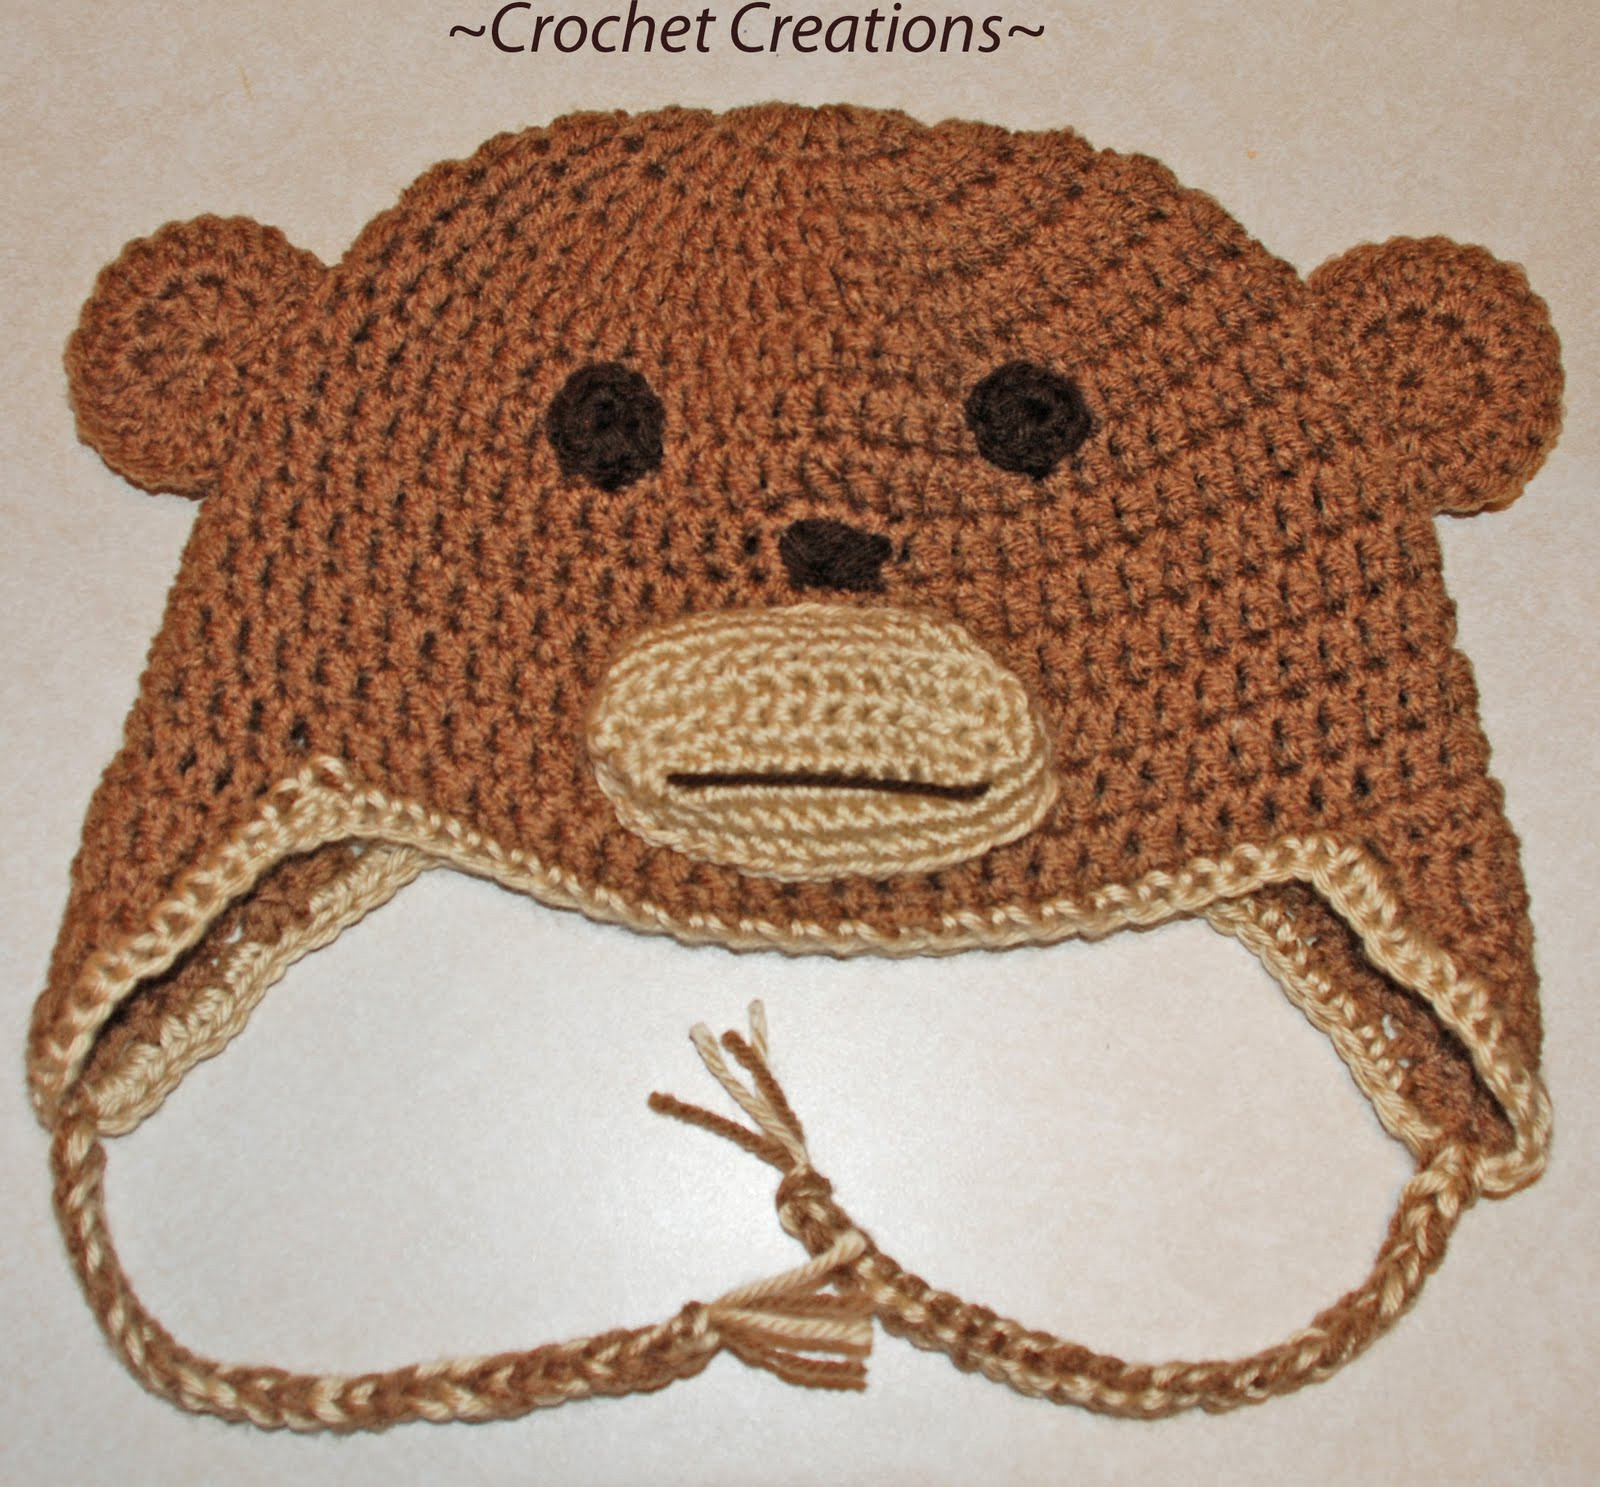 Inspirational Amy S Crochet Creative Creations Crochet Monkey Child Ear Free Crochet Monkey Pattern Of Innovative 50 Ideas Free Crochet Monkey Pattern